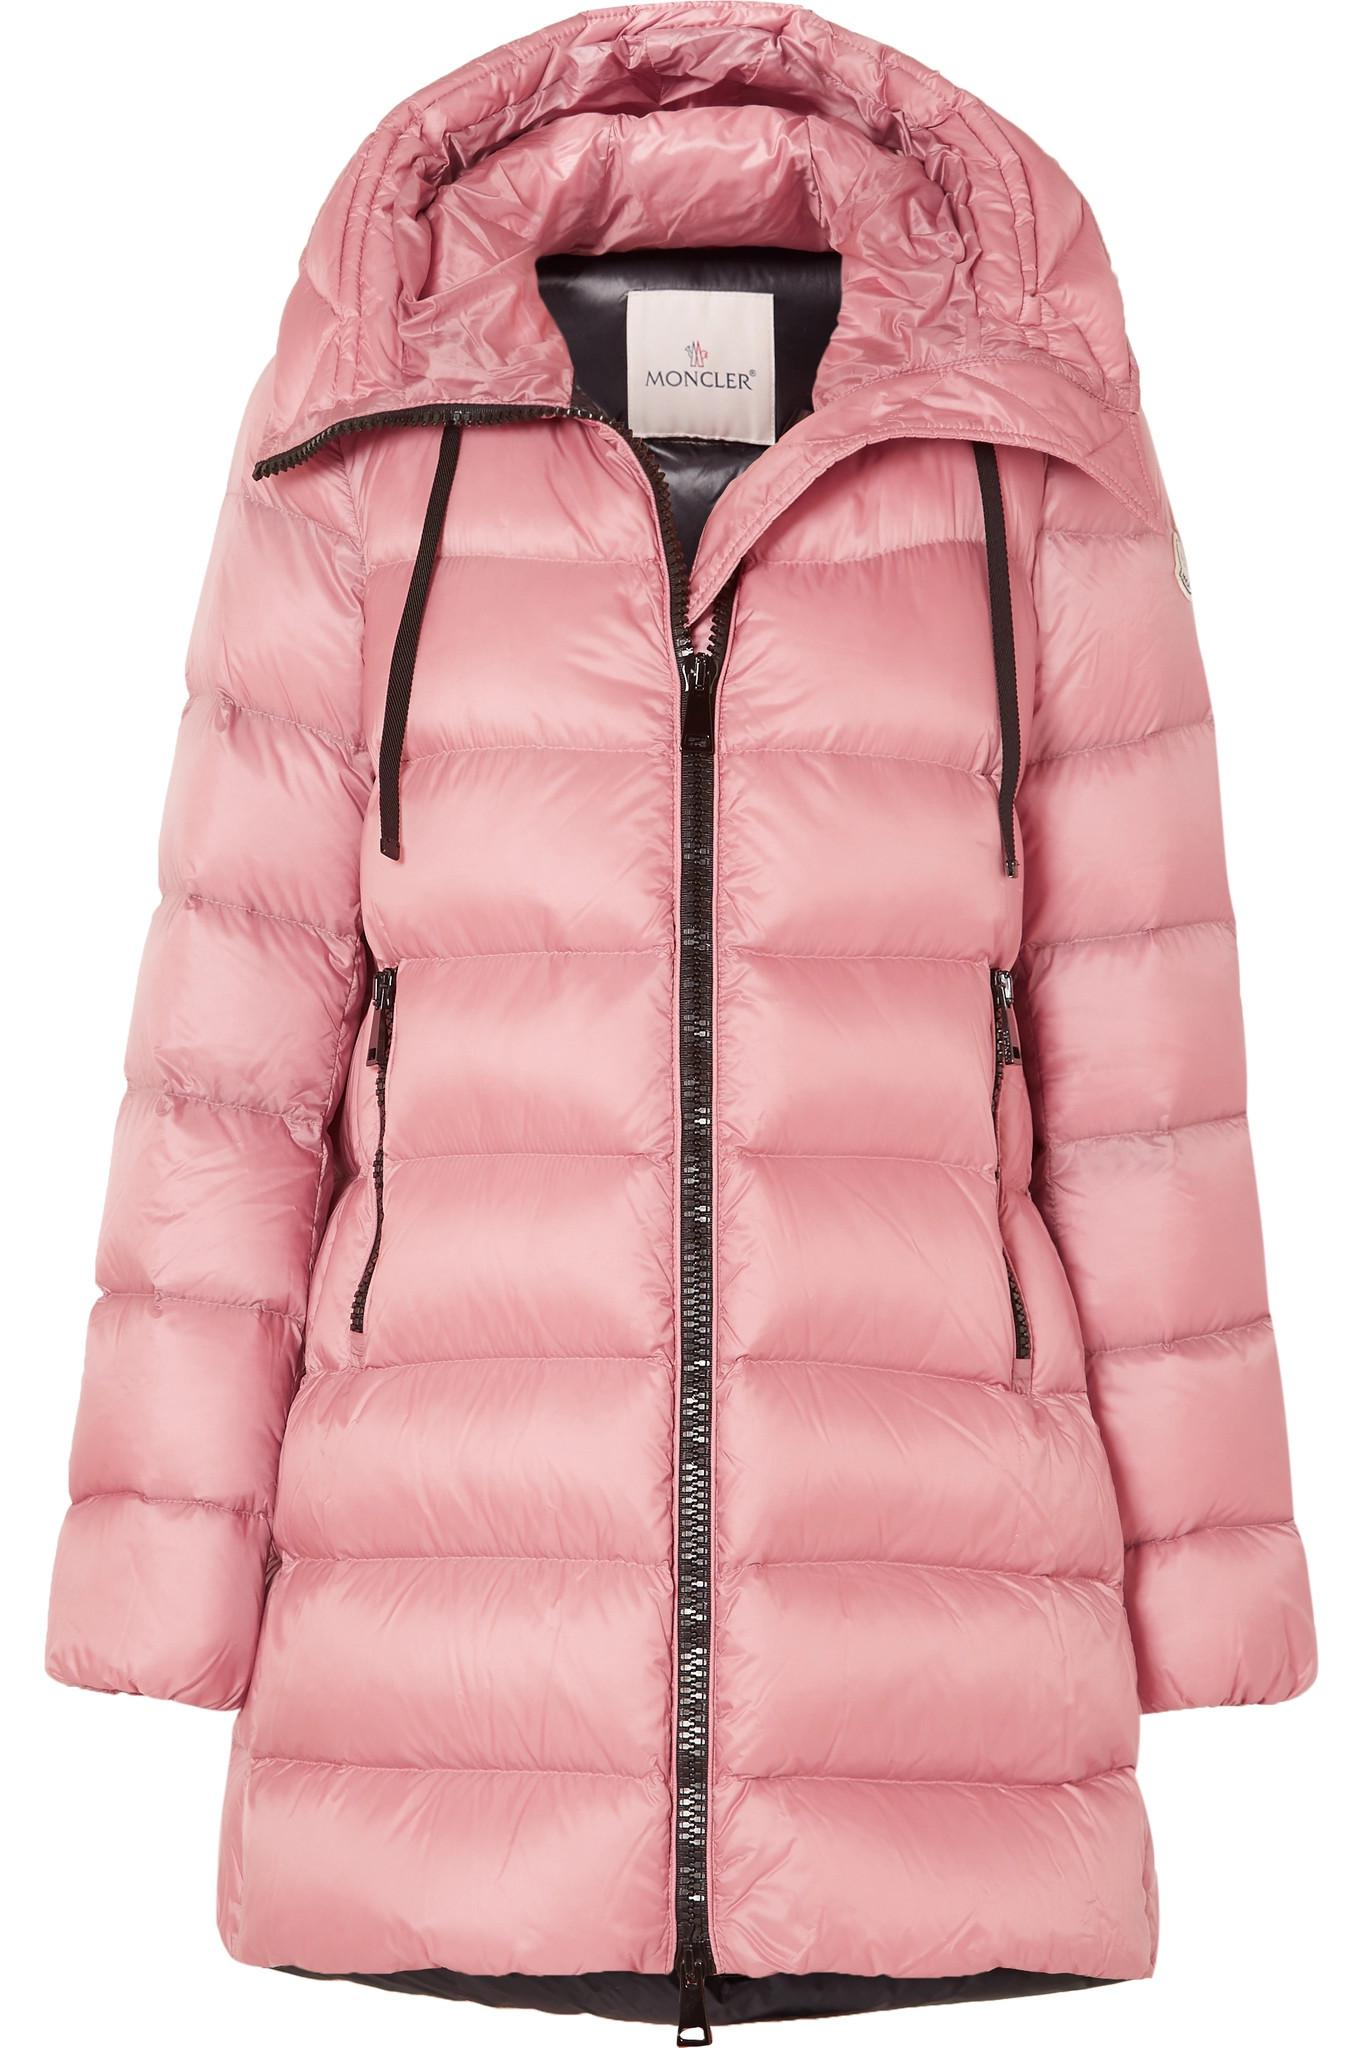 7074feff3 low price moncler jacket pink new album 75a5e 7bfde